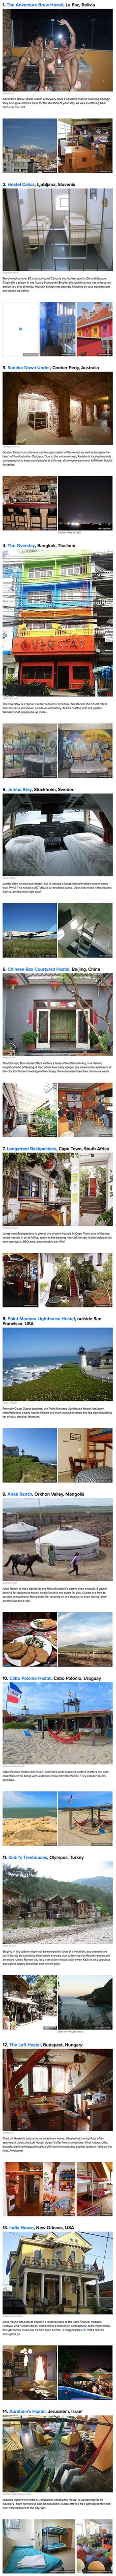 We have rounded up some cool hostels from around the world that geeks would love.